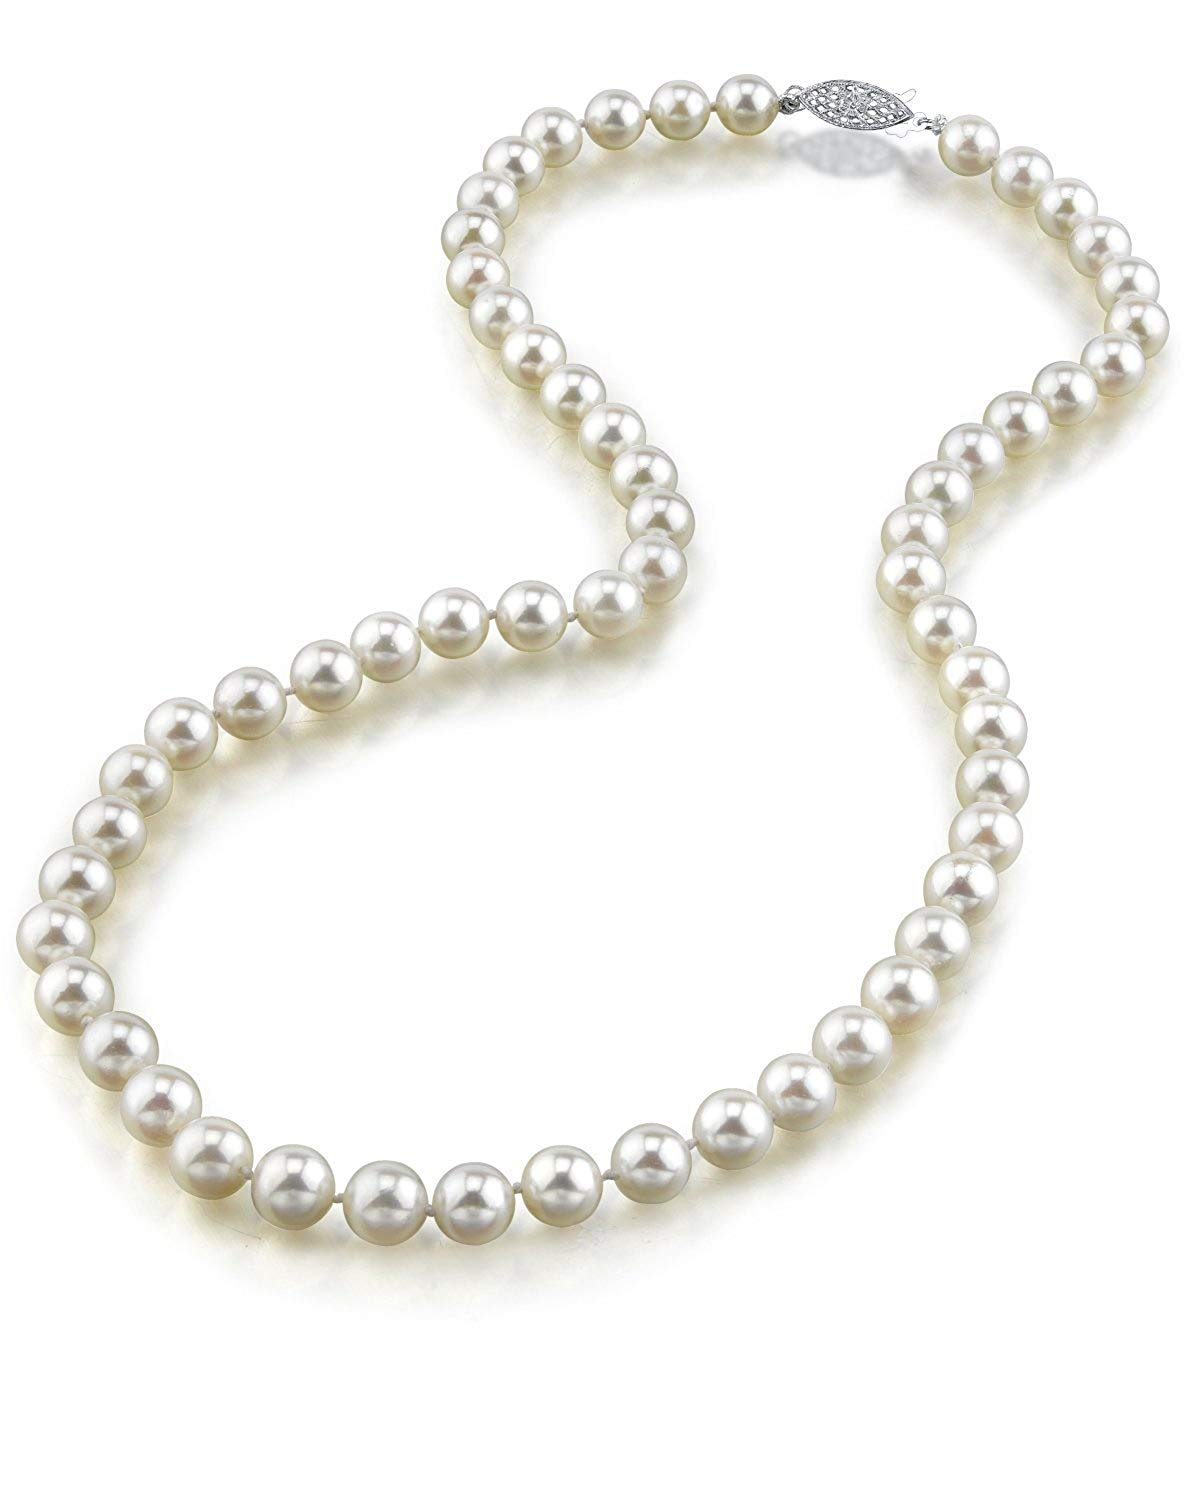 "14K Gold 6.5-7.0mm Japanese Akoya Saltwater White Cultured Pearl Necklace - AA+ Quality, 18"" Princess Length"